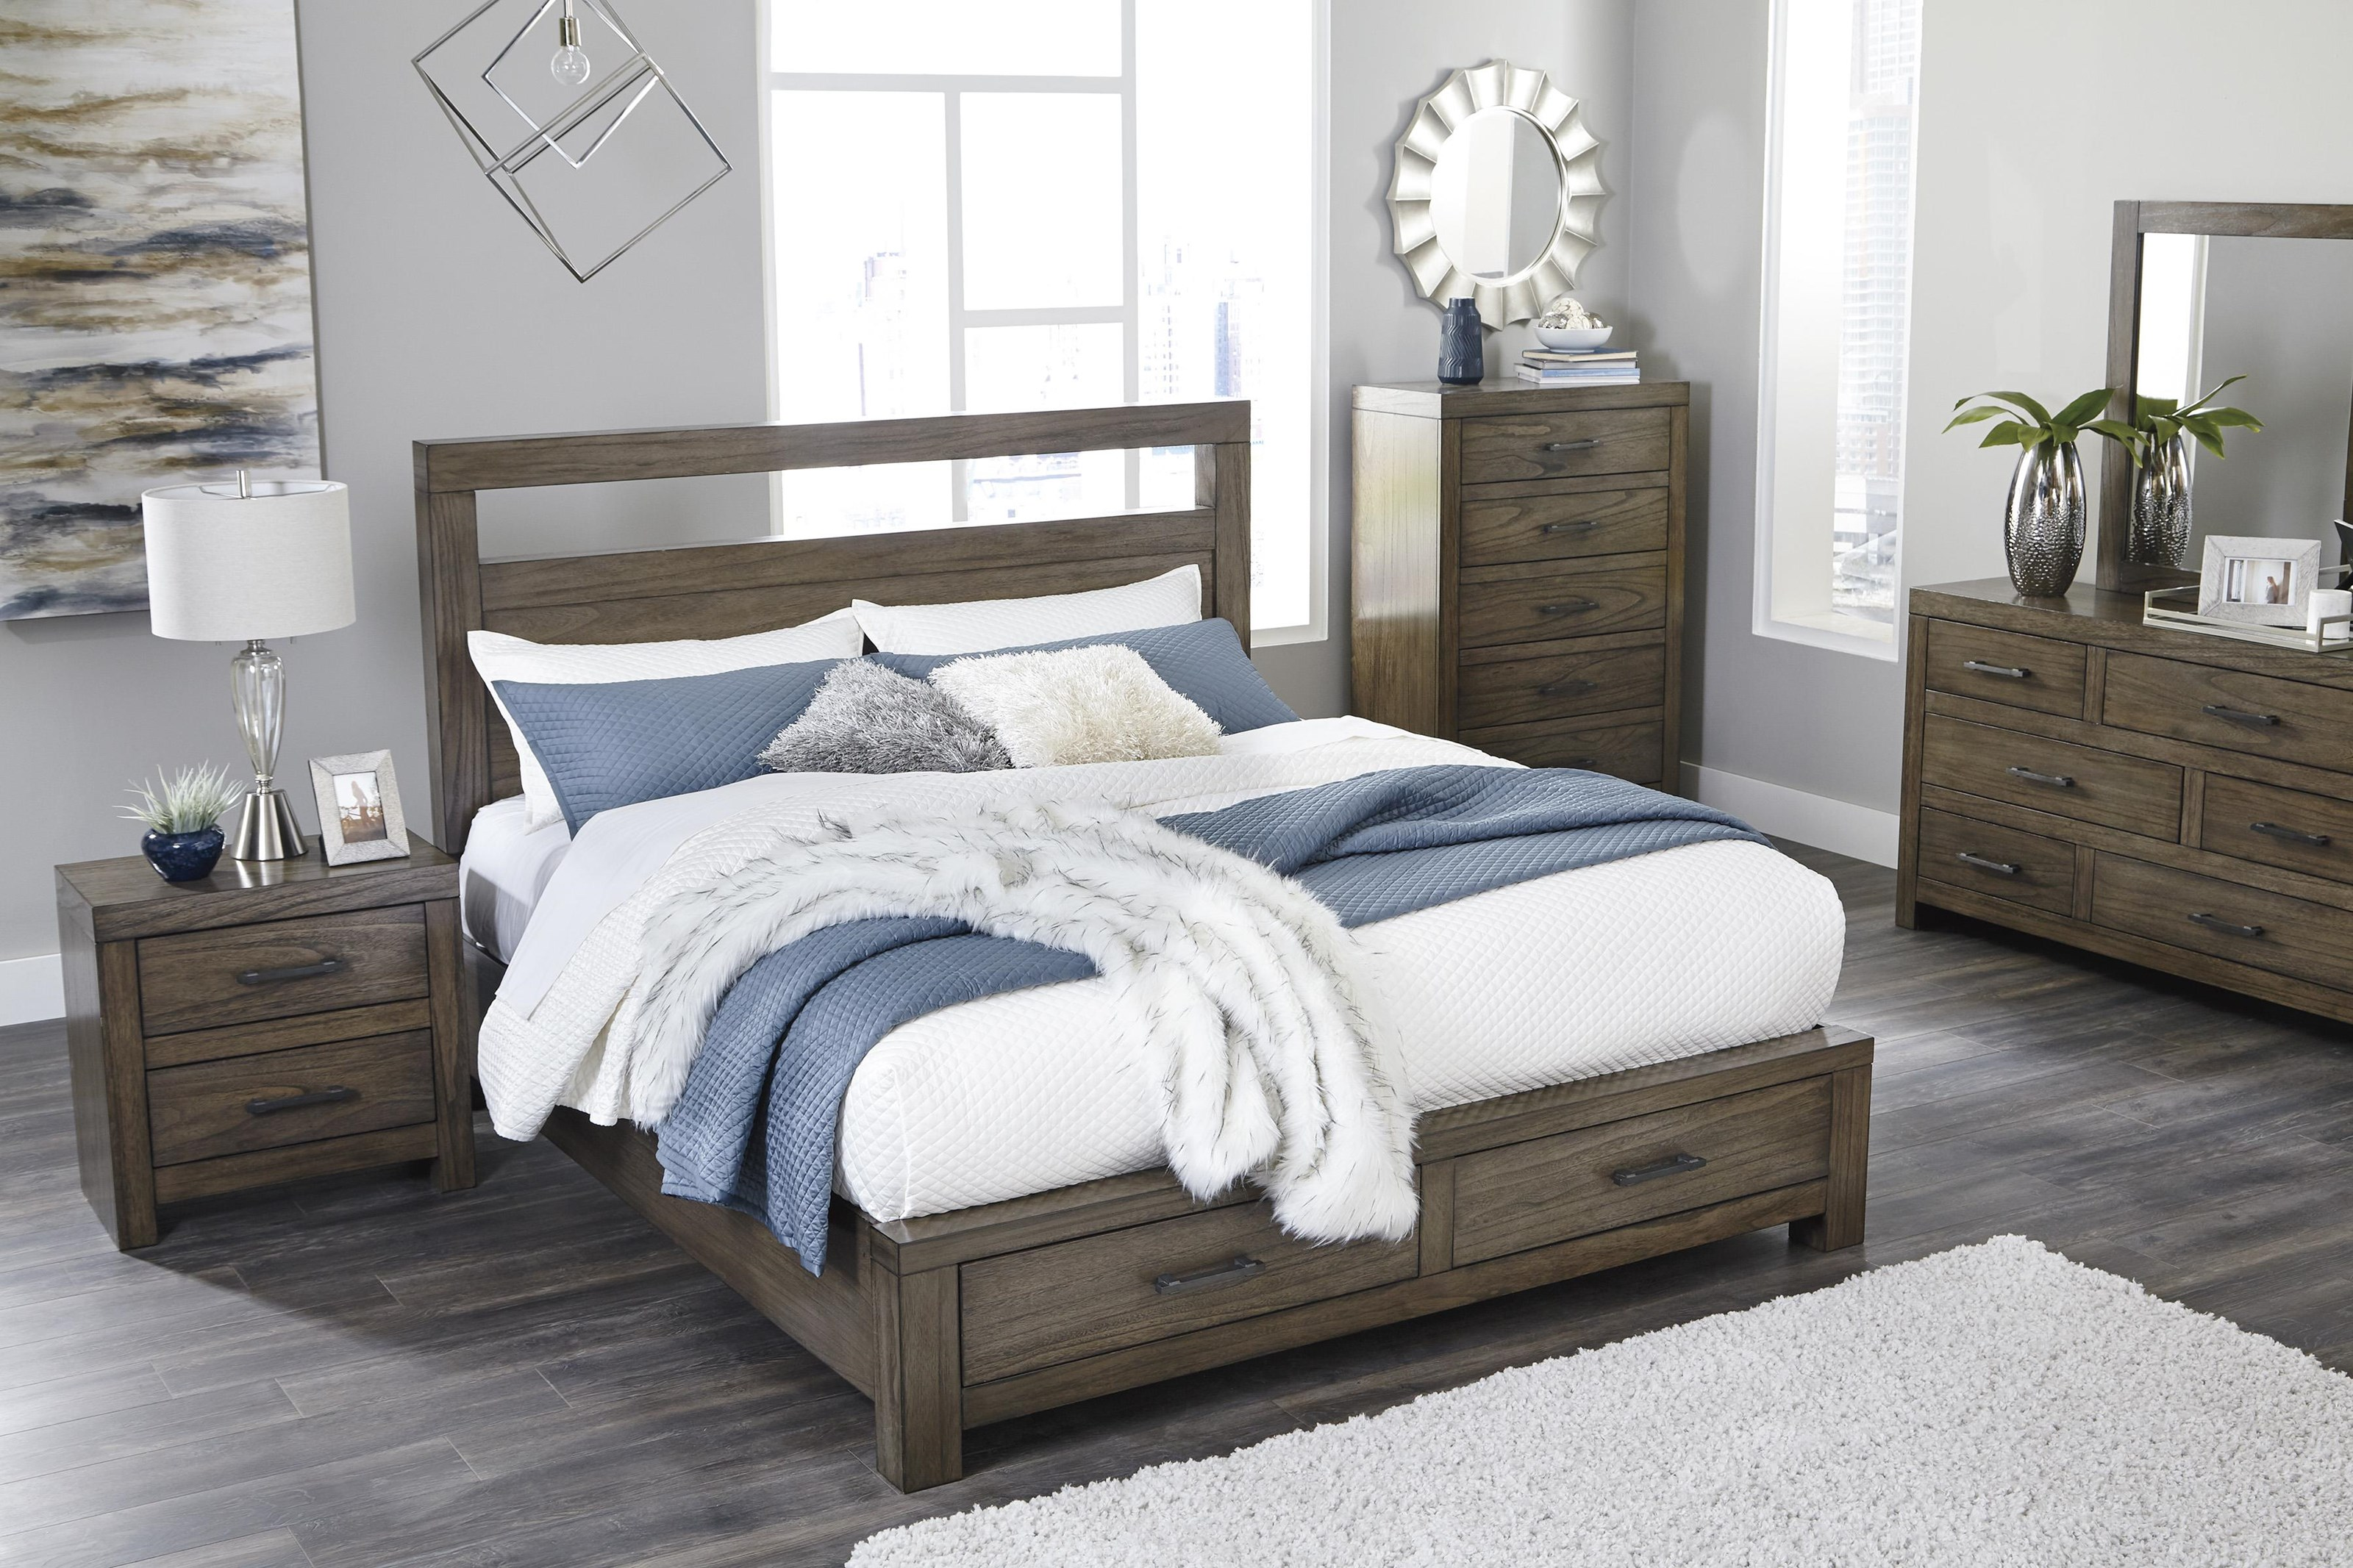 Signature Design By Ashley Deylin B537 57 54s Queen Storage Bed Furniture And Appliancemart Panel Beds